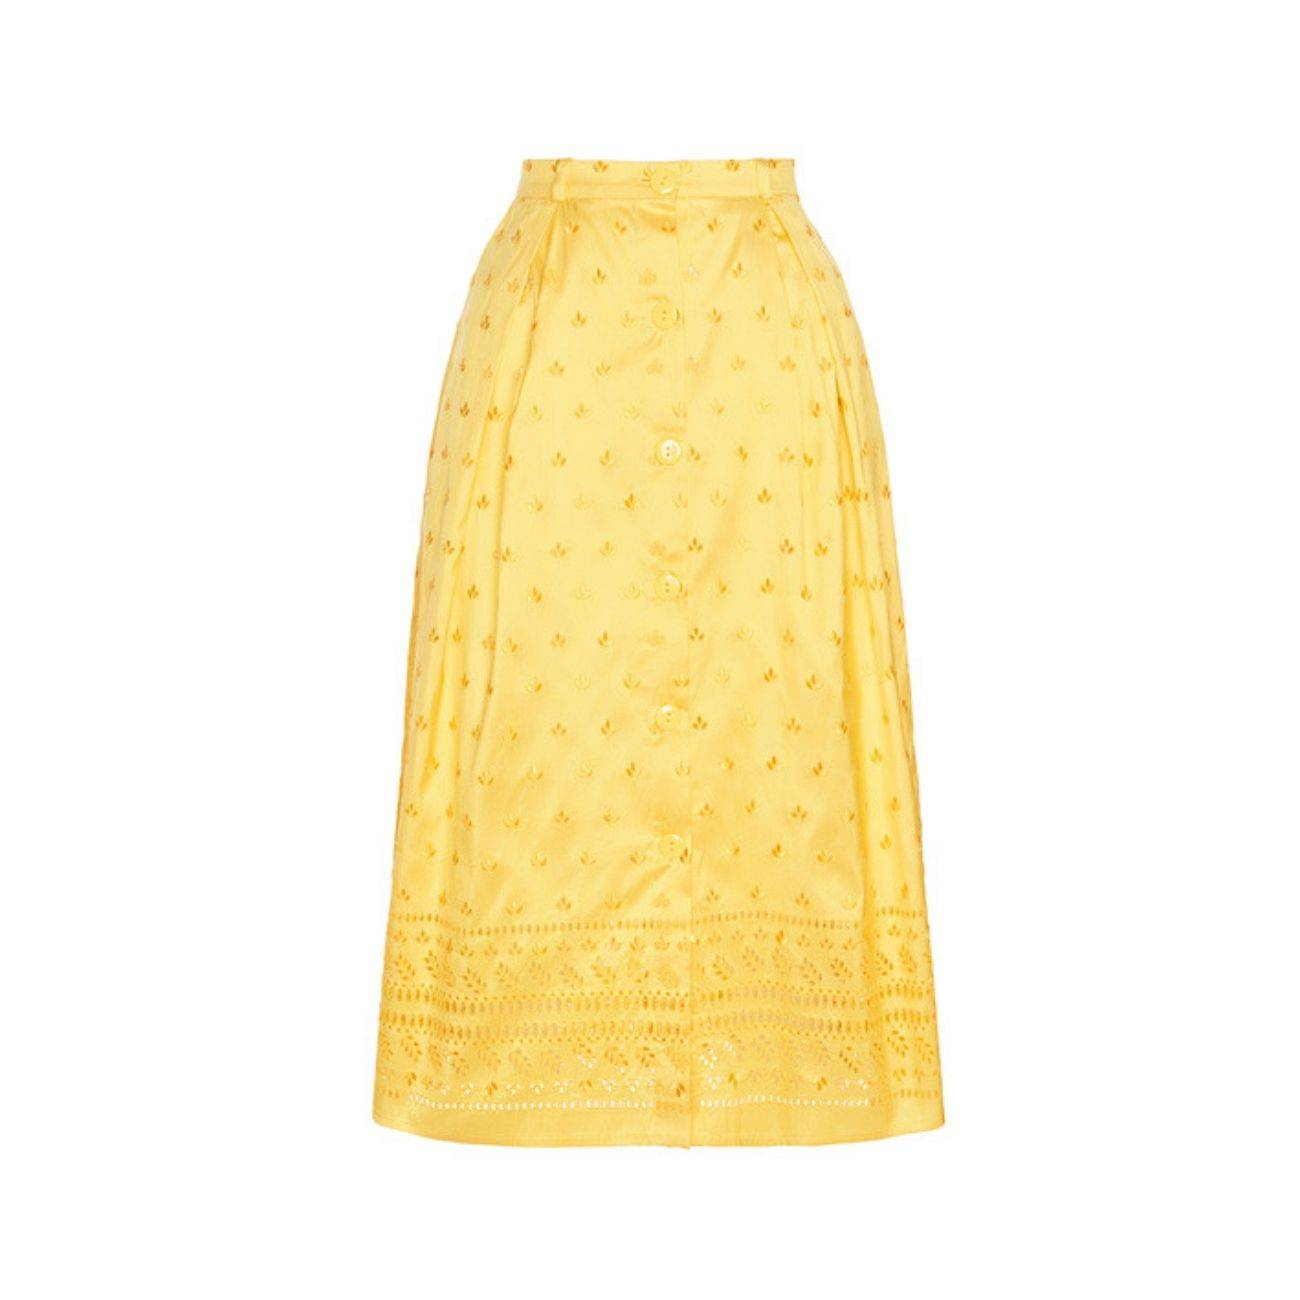 19.04 World Needlework Silk Midi Skirt